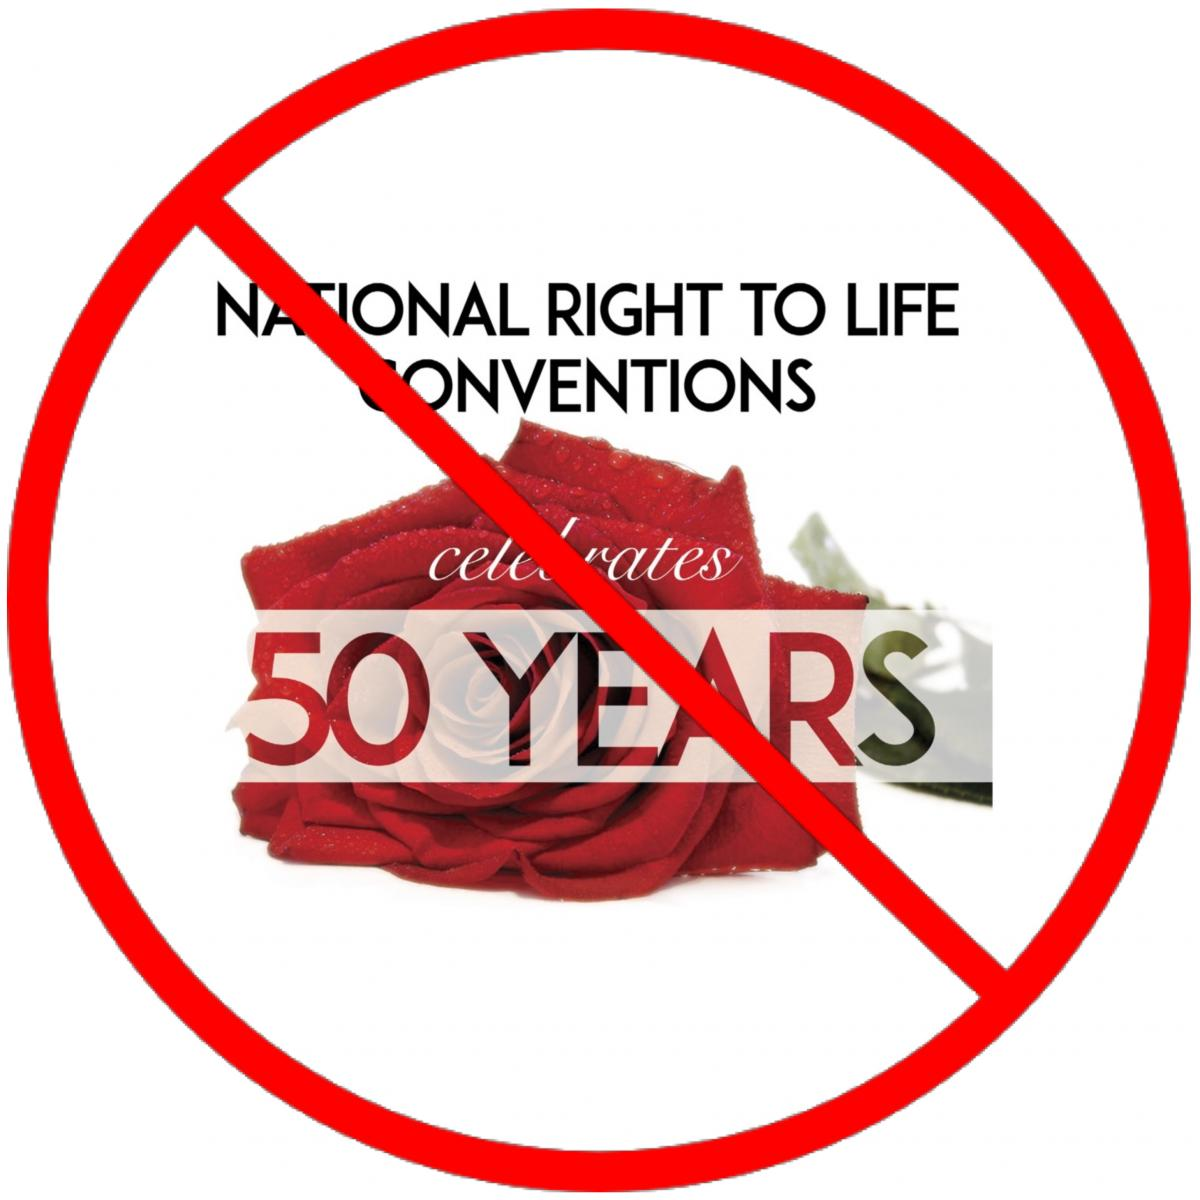 National Right To Life celebrates eternal annual conventions